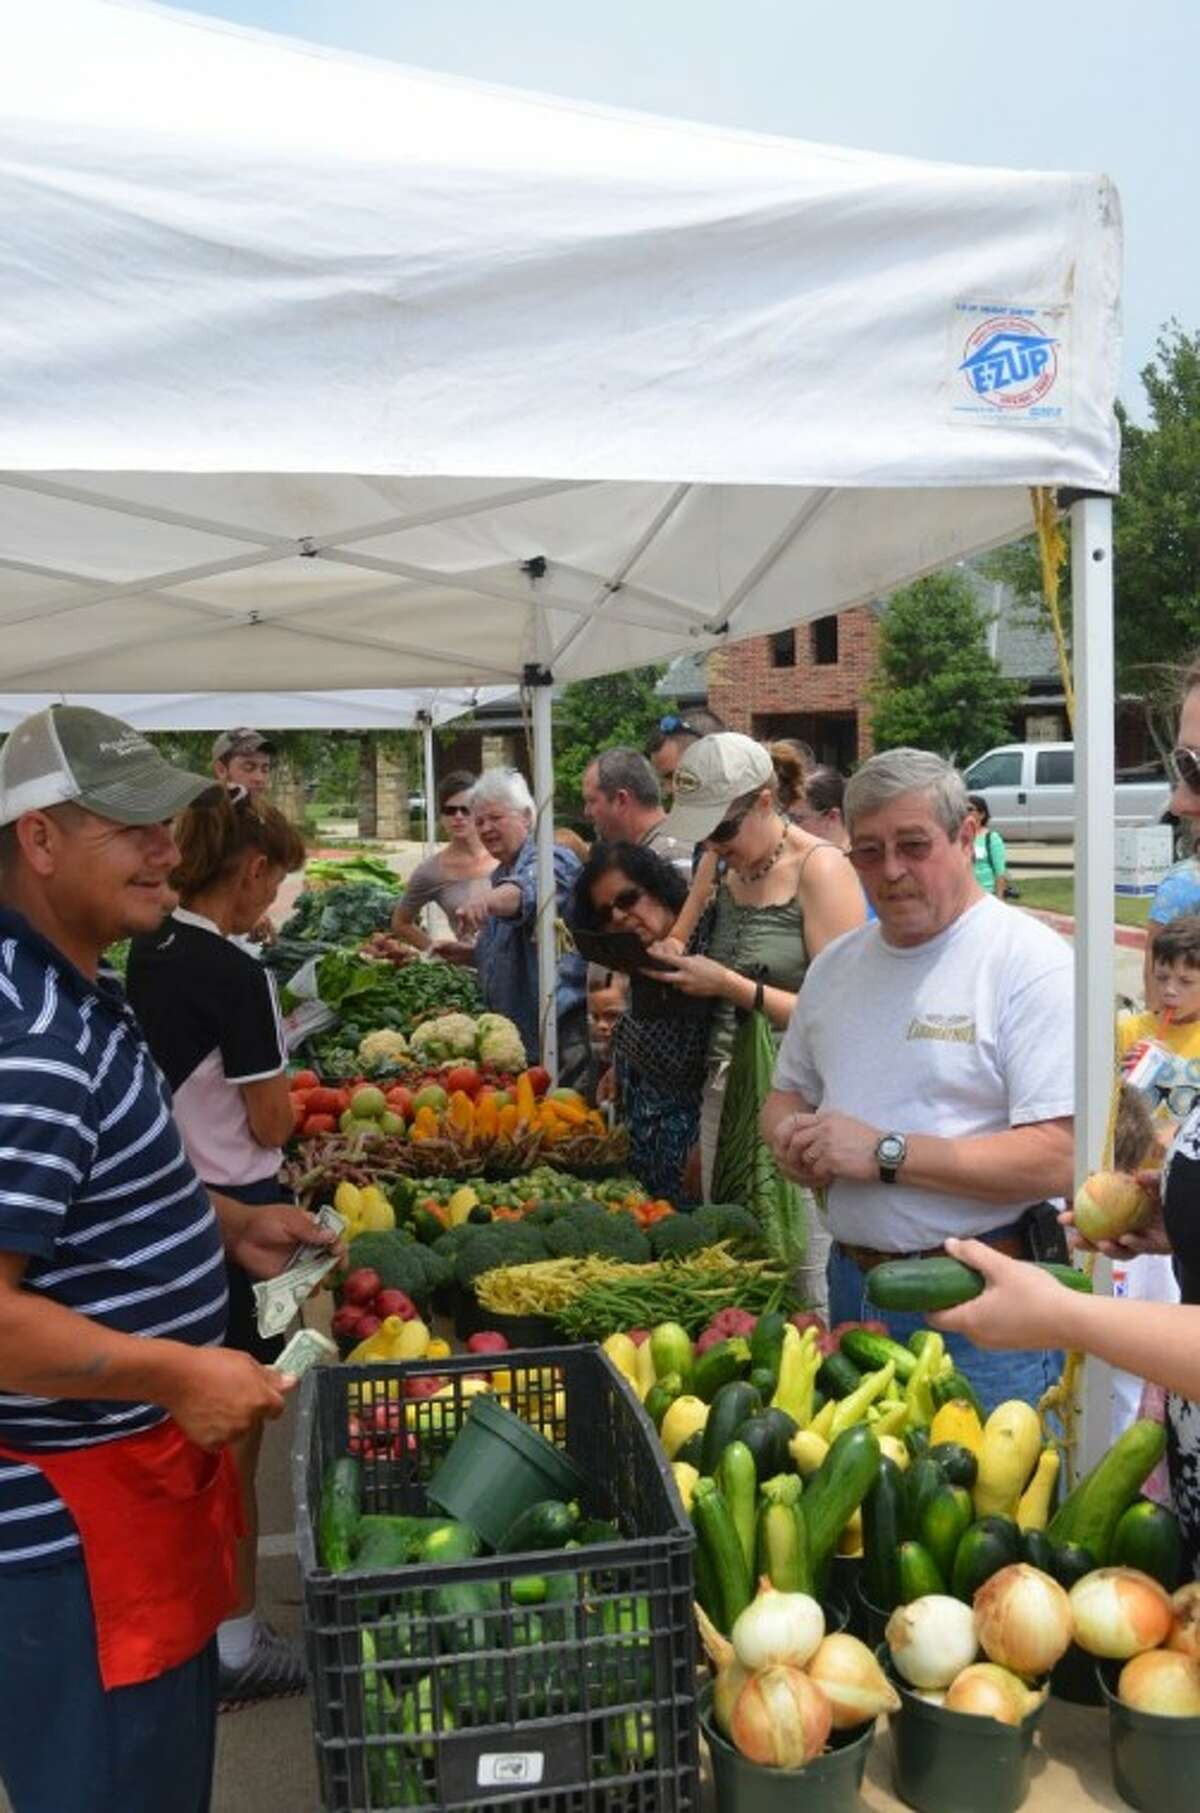 The Farmers Market at Bridgeland is gearing up for its scheduled Aug. 12 opening.